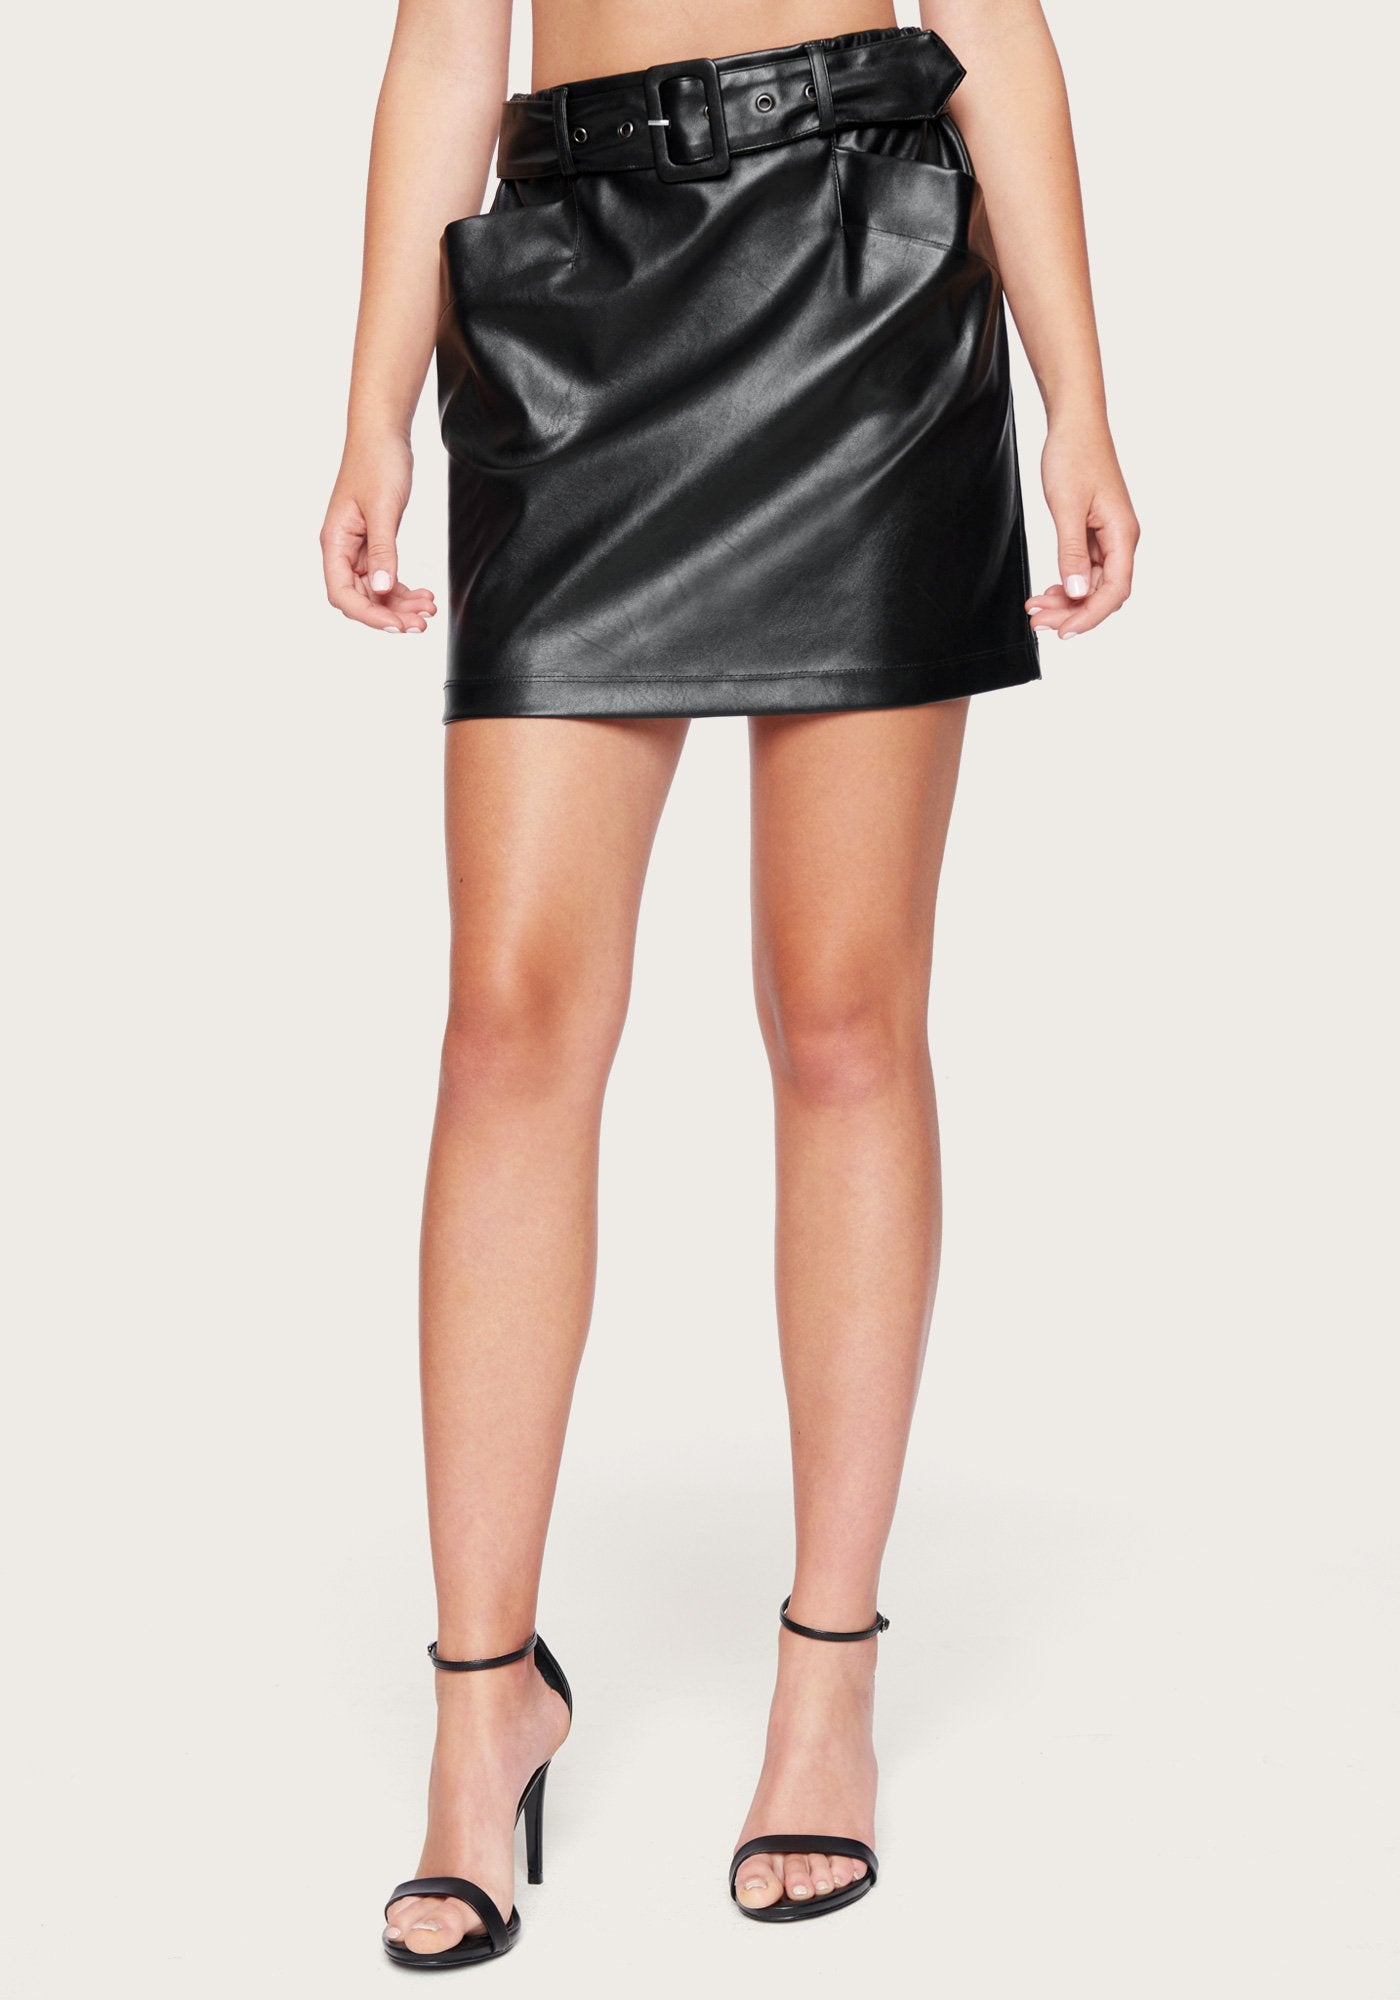 Bebe Women's Faux Leather Belted Skirt, Size 00 in Black Polyurethane